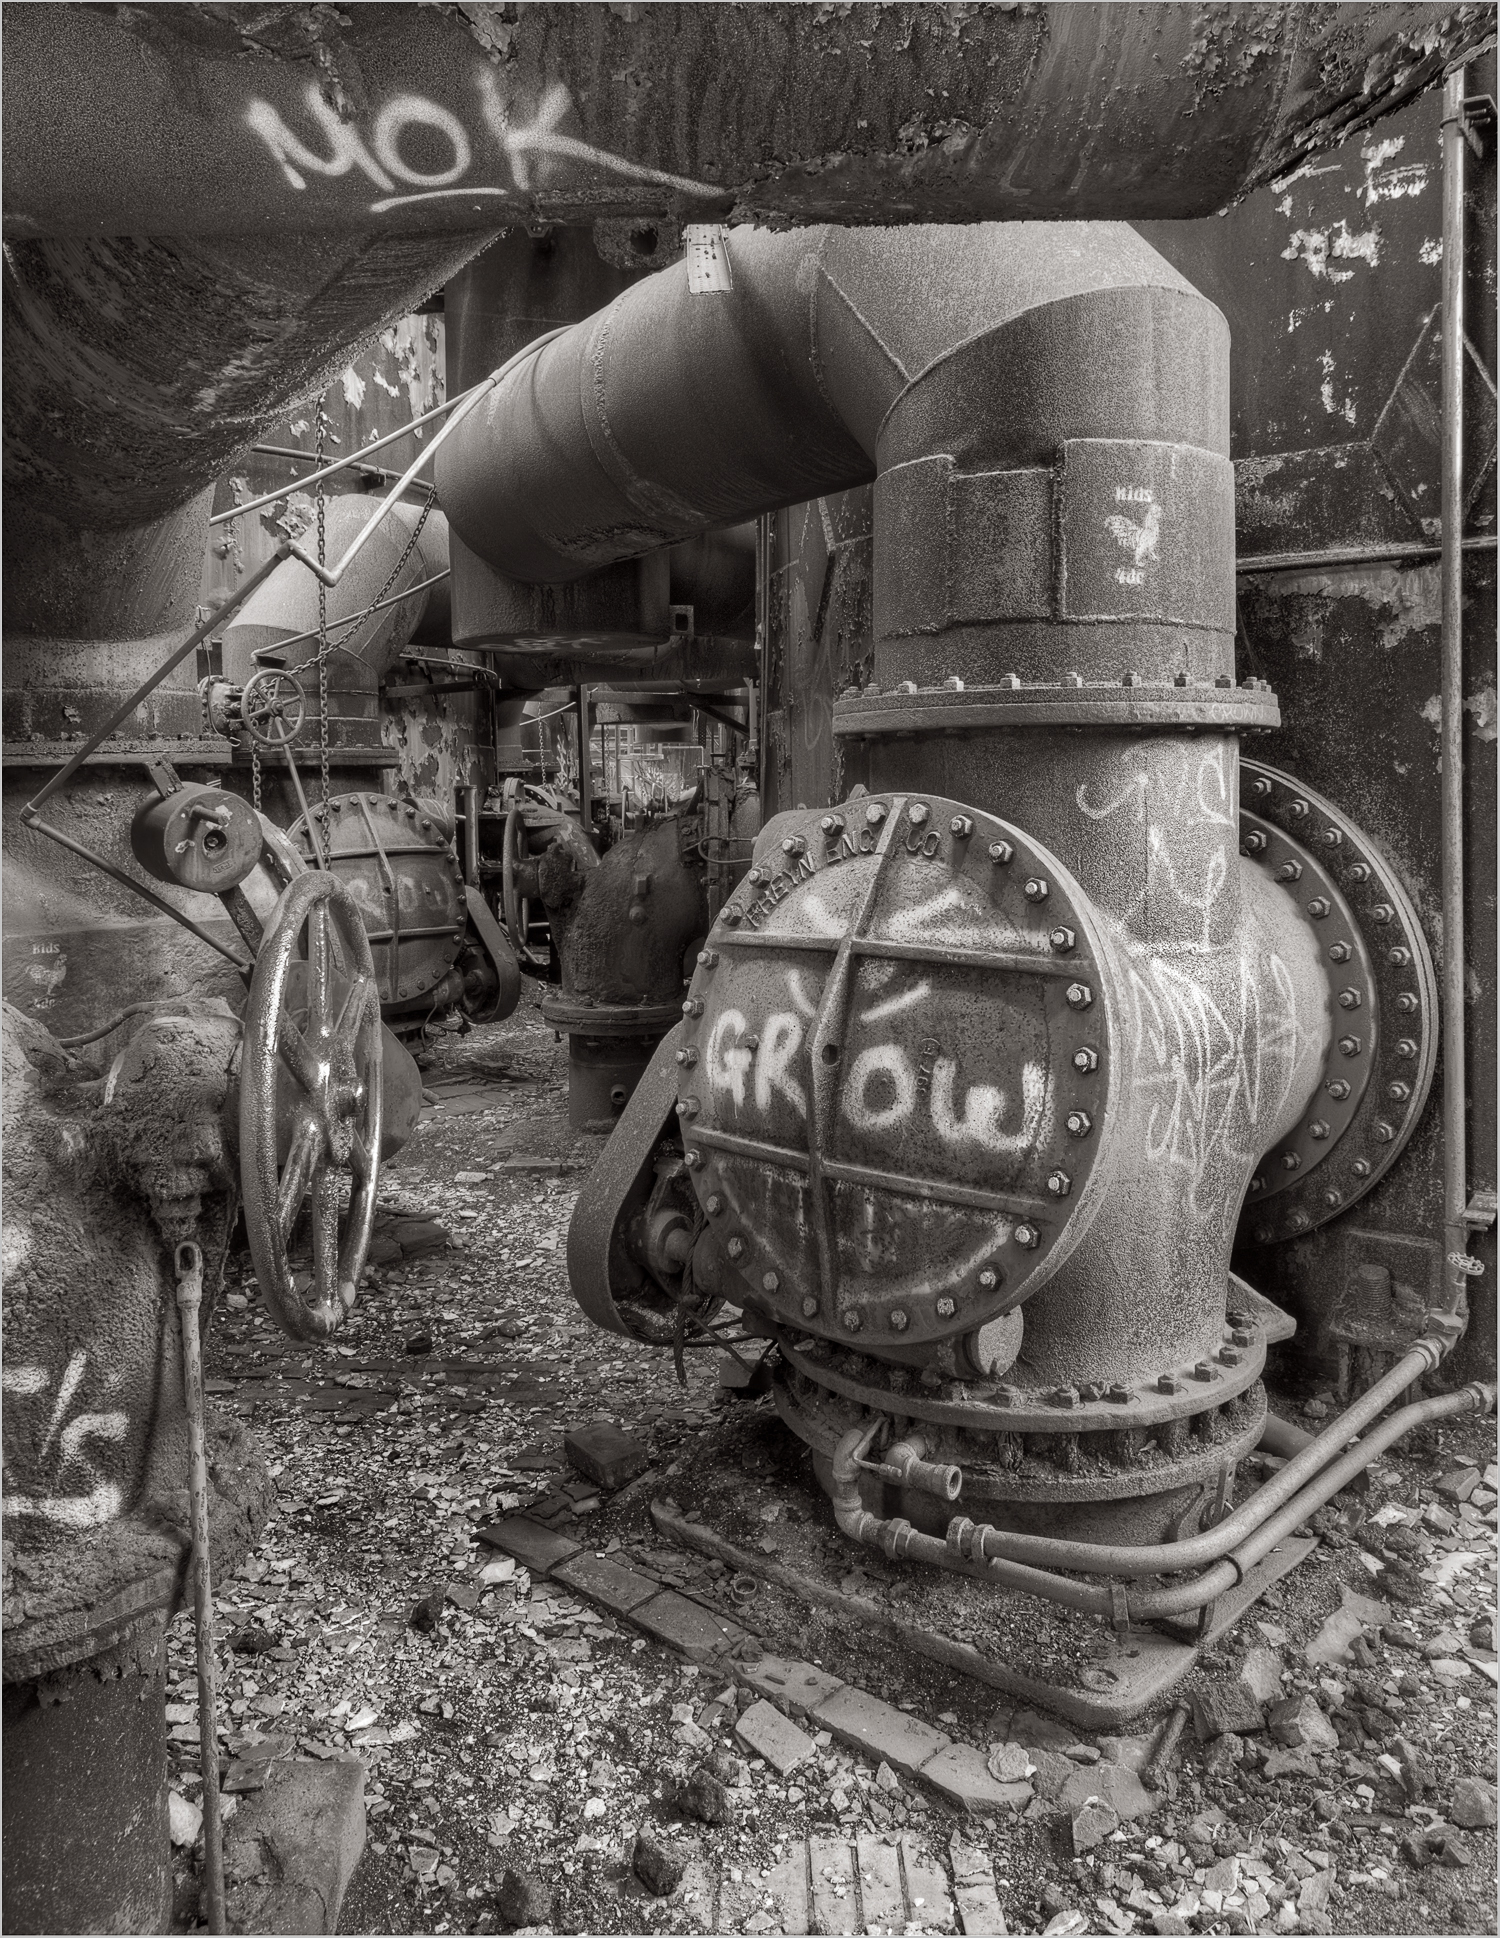 Photograph of the Stove Room at the Carrie Furnace. The Stove Room was an extremely dangerous place to work because of the toxic gases that could be released.